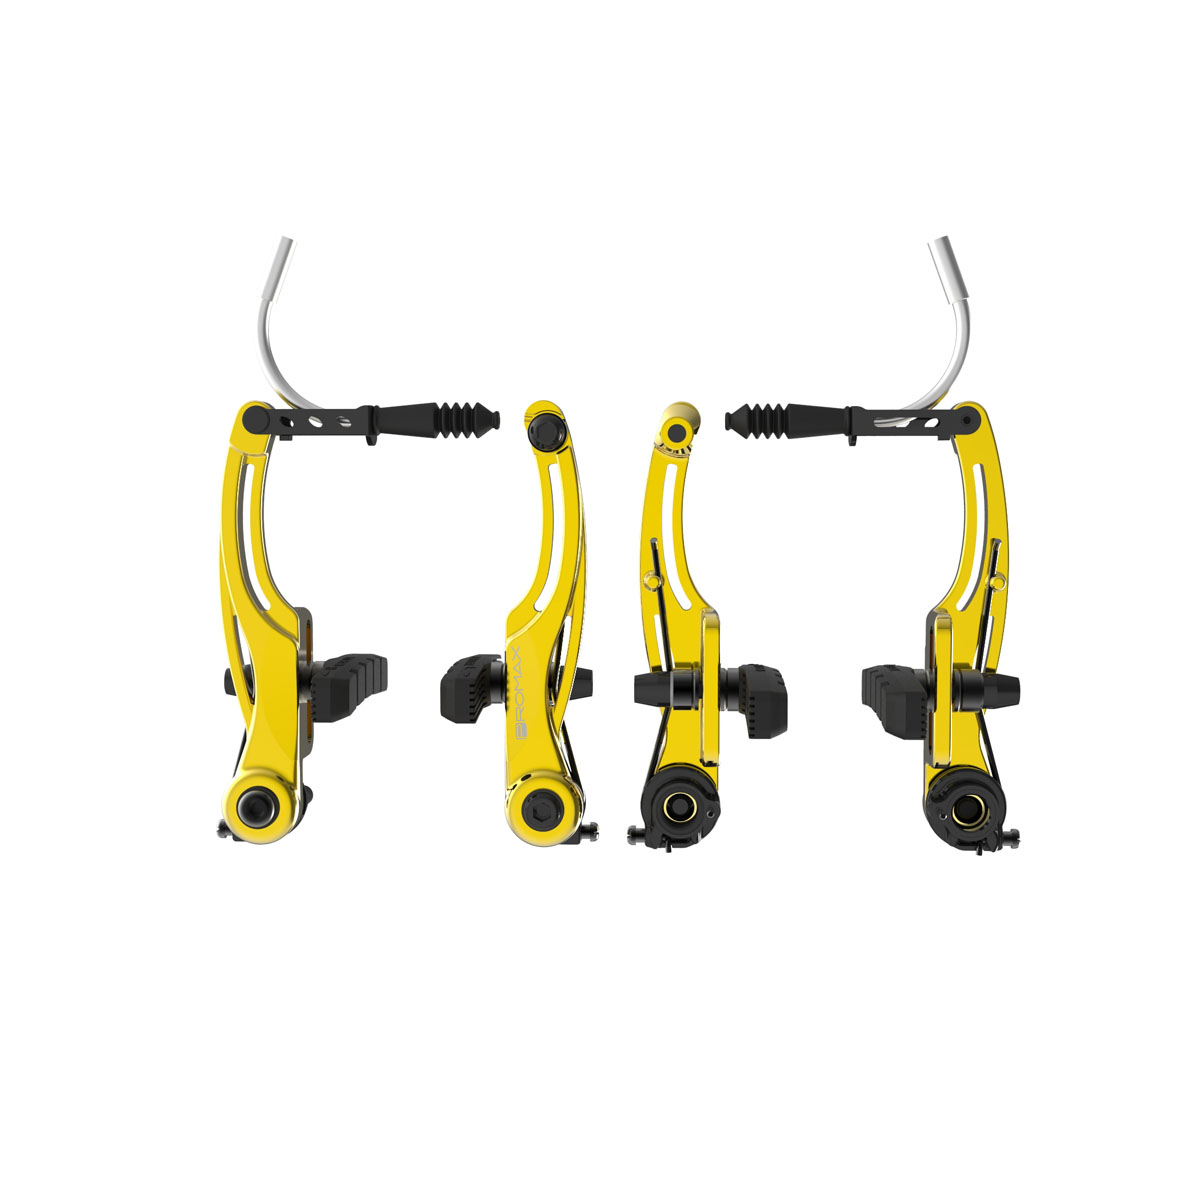 Promax P-1 Linear Pull Brakes 108mm Reach Gold